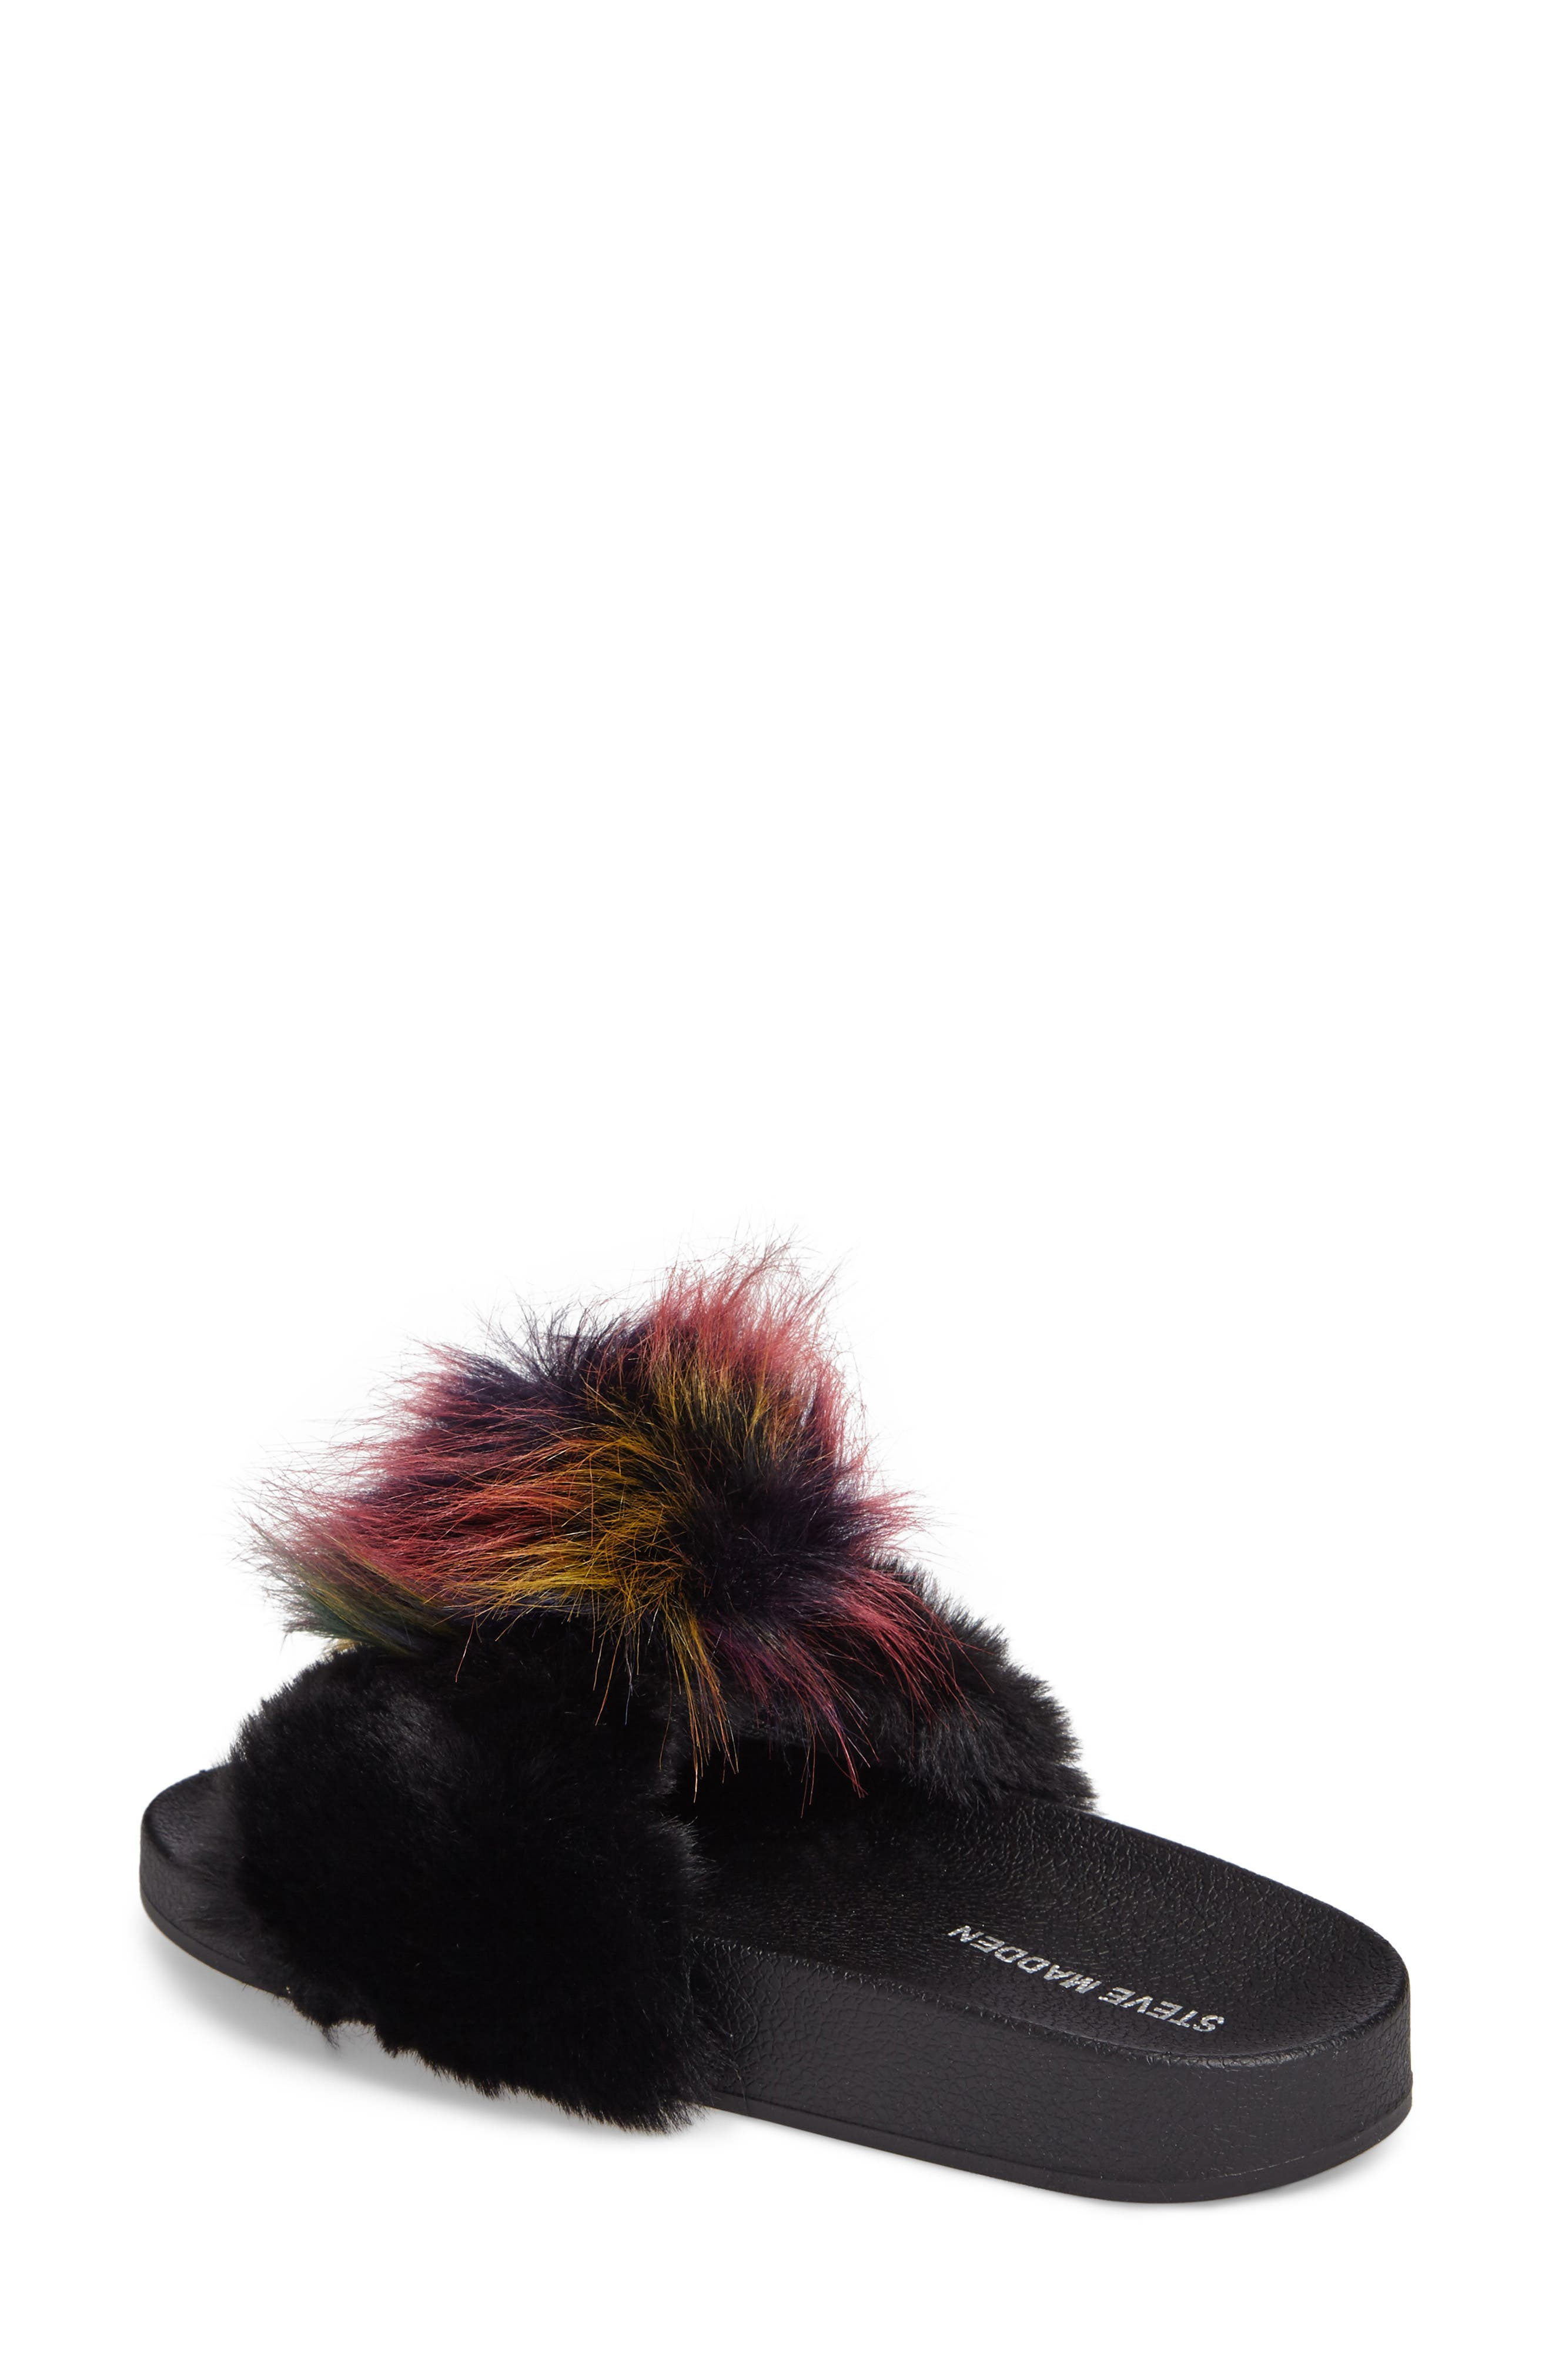 Spiral Faux Fur Slide Sandal,                             Alternate thumbnail 2, color,                             015